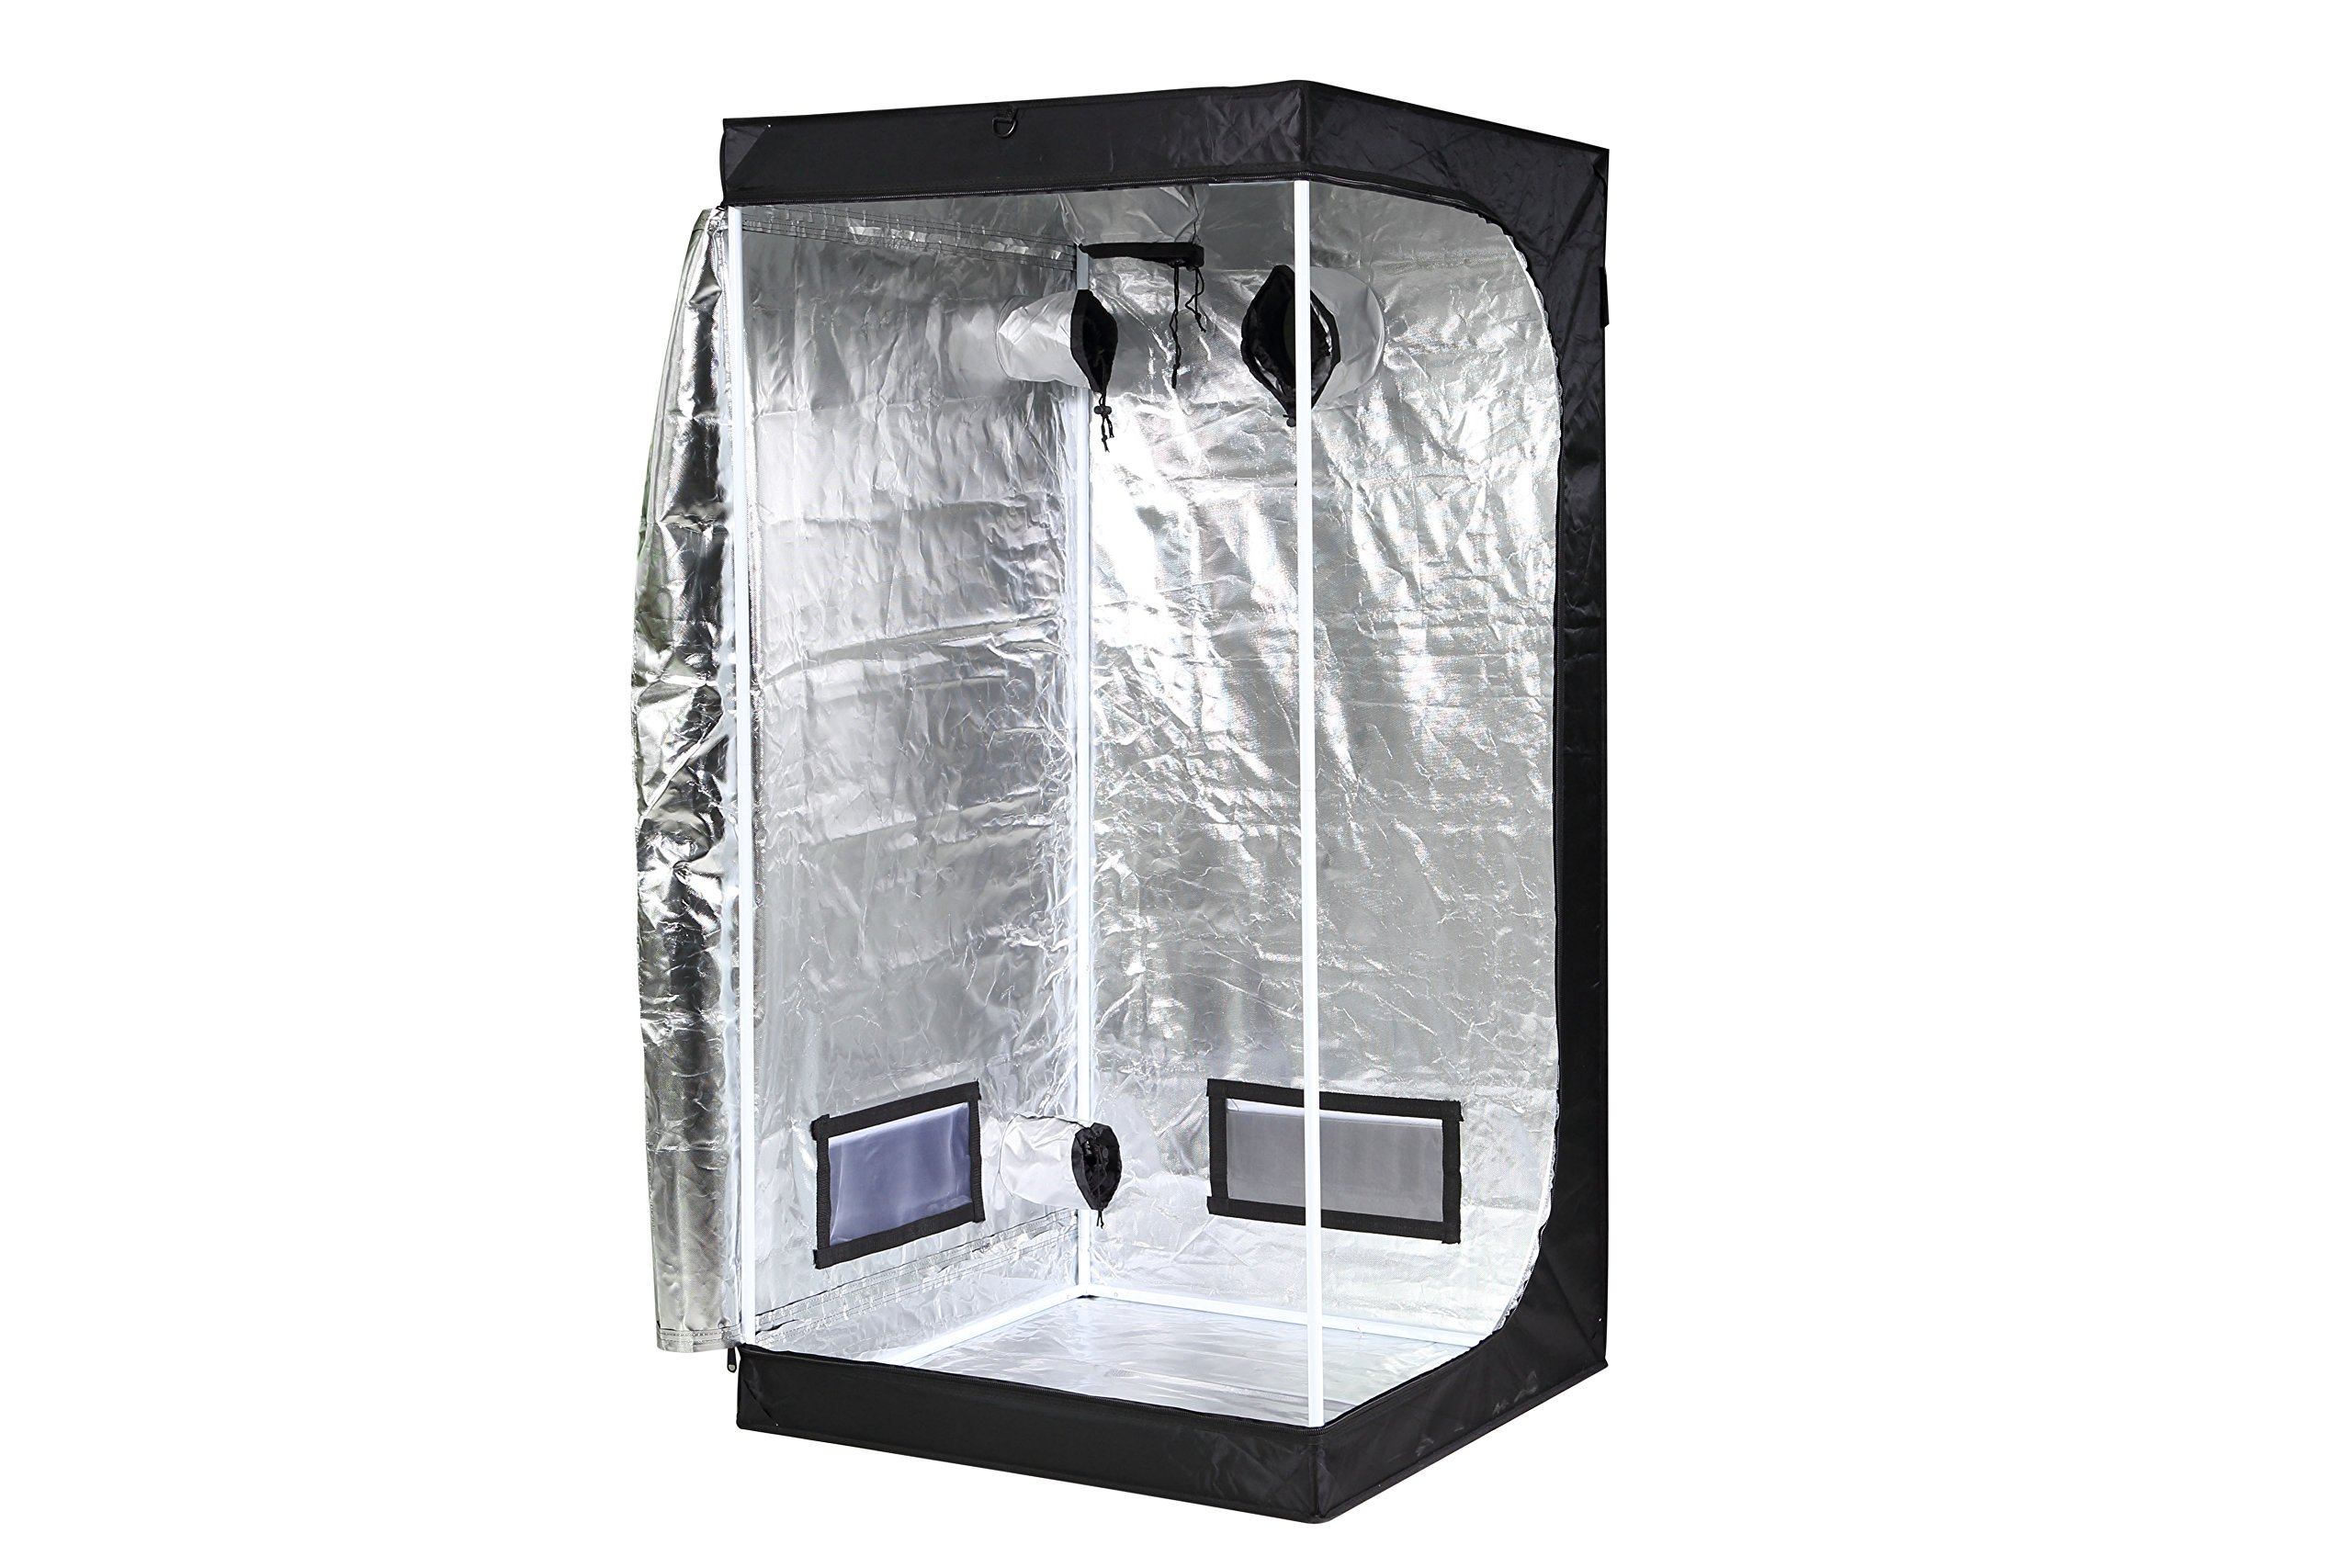 iPower GLTENTXS3 Mylar Hydroponic Grow Tent for Indoor Seedling Plant Growing w/Metal Push-Lock Corners, 32''x32''x63'', Water-Resistant. Removable Mylar Floor Tray Included